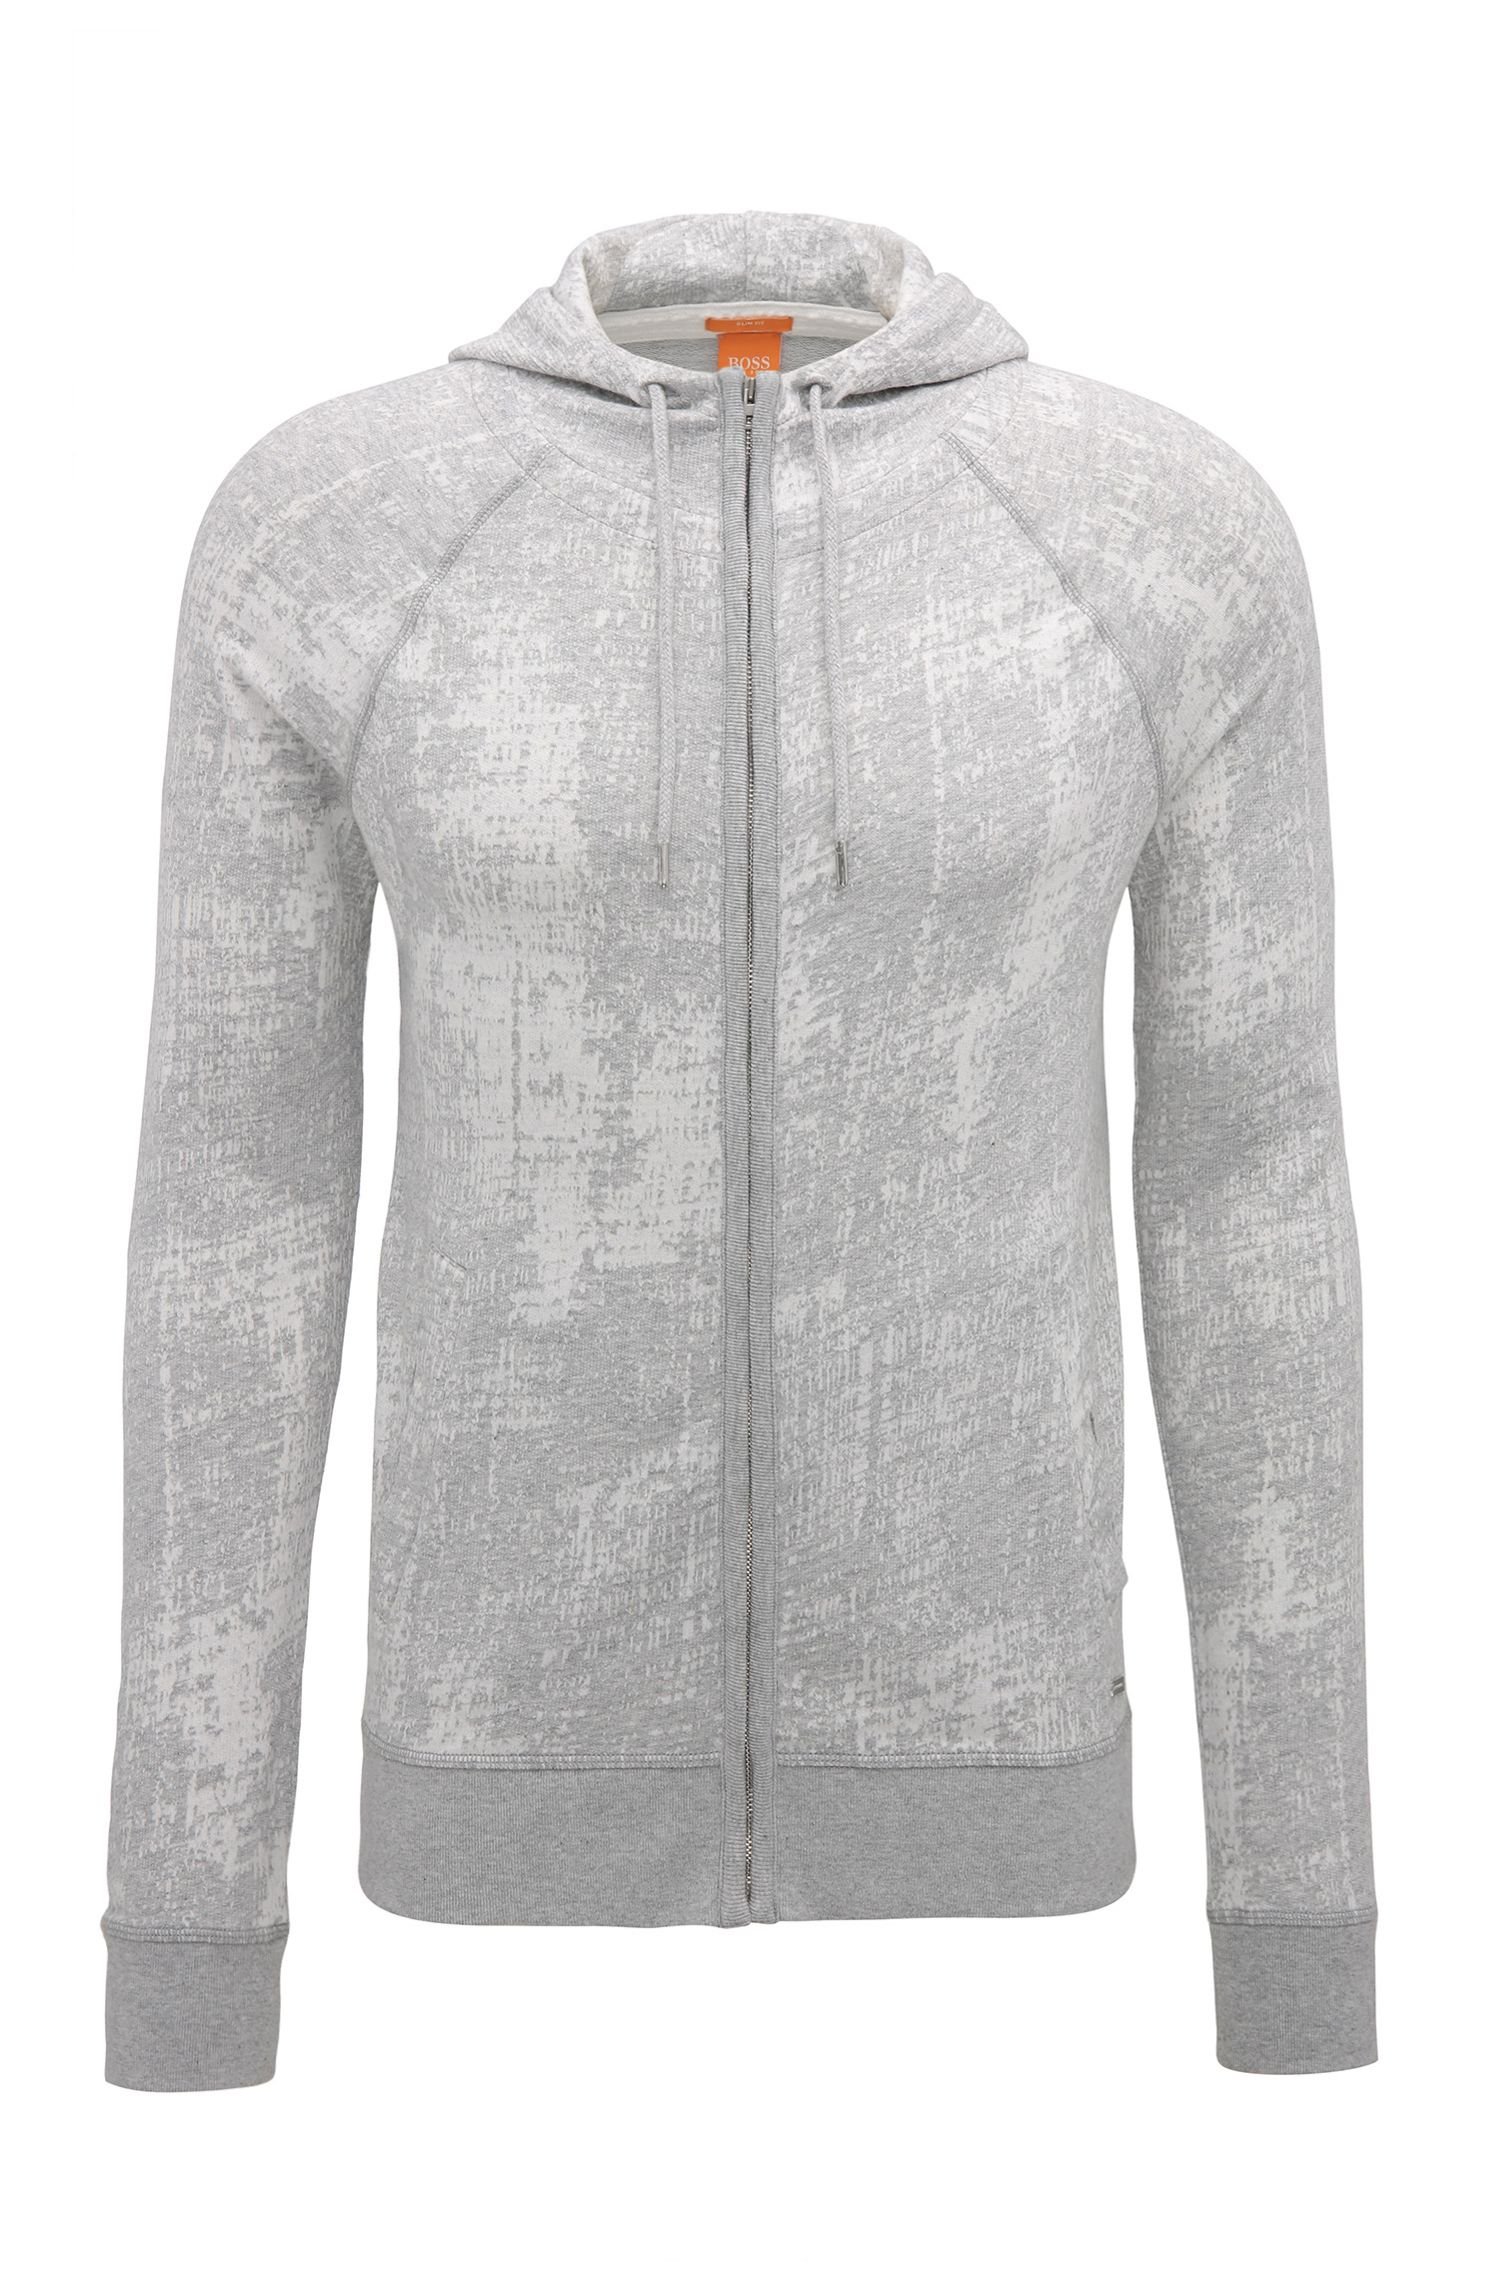 Slim-fit zip-through sweatshirt in cotton jacquard